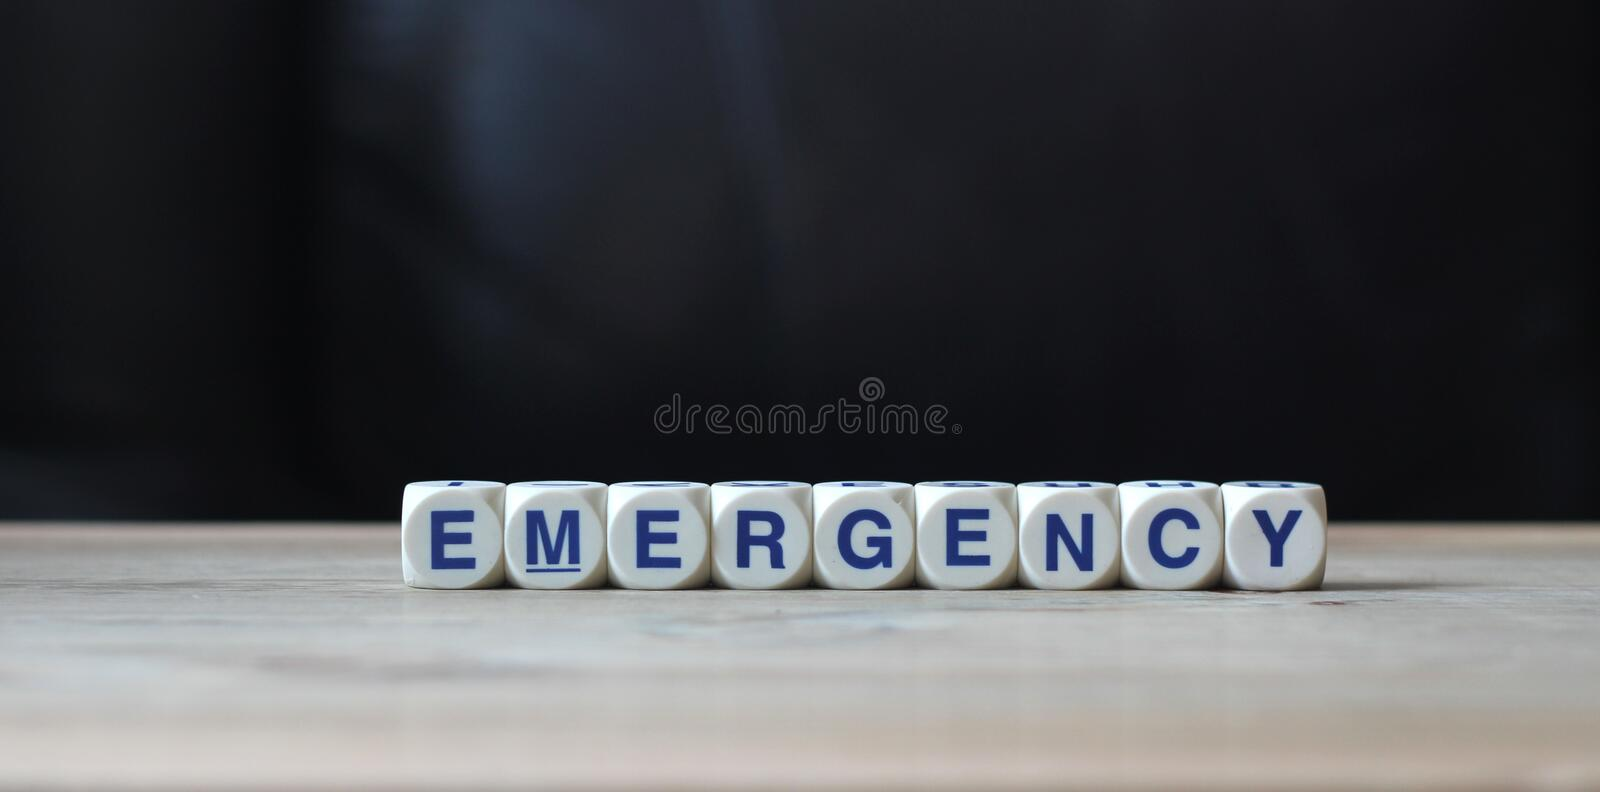 Emergency. White letter cubes on table and black background word emergency stock images